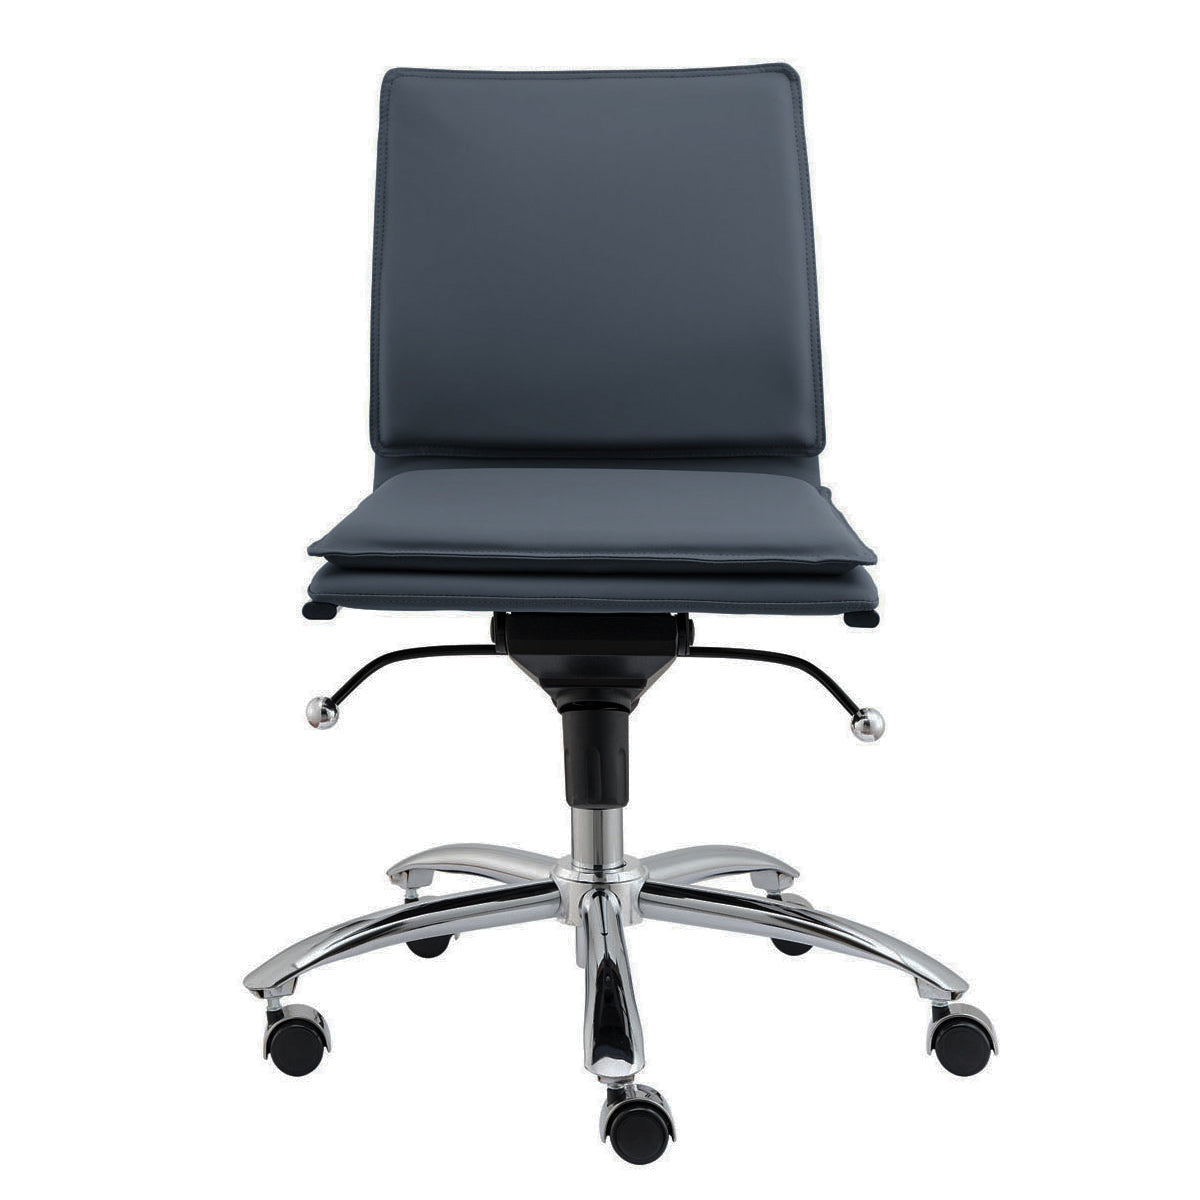 Gunar Pro Armless Office Chair